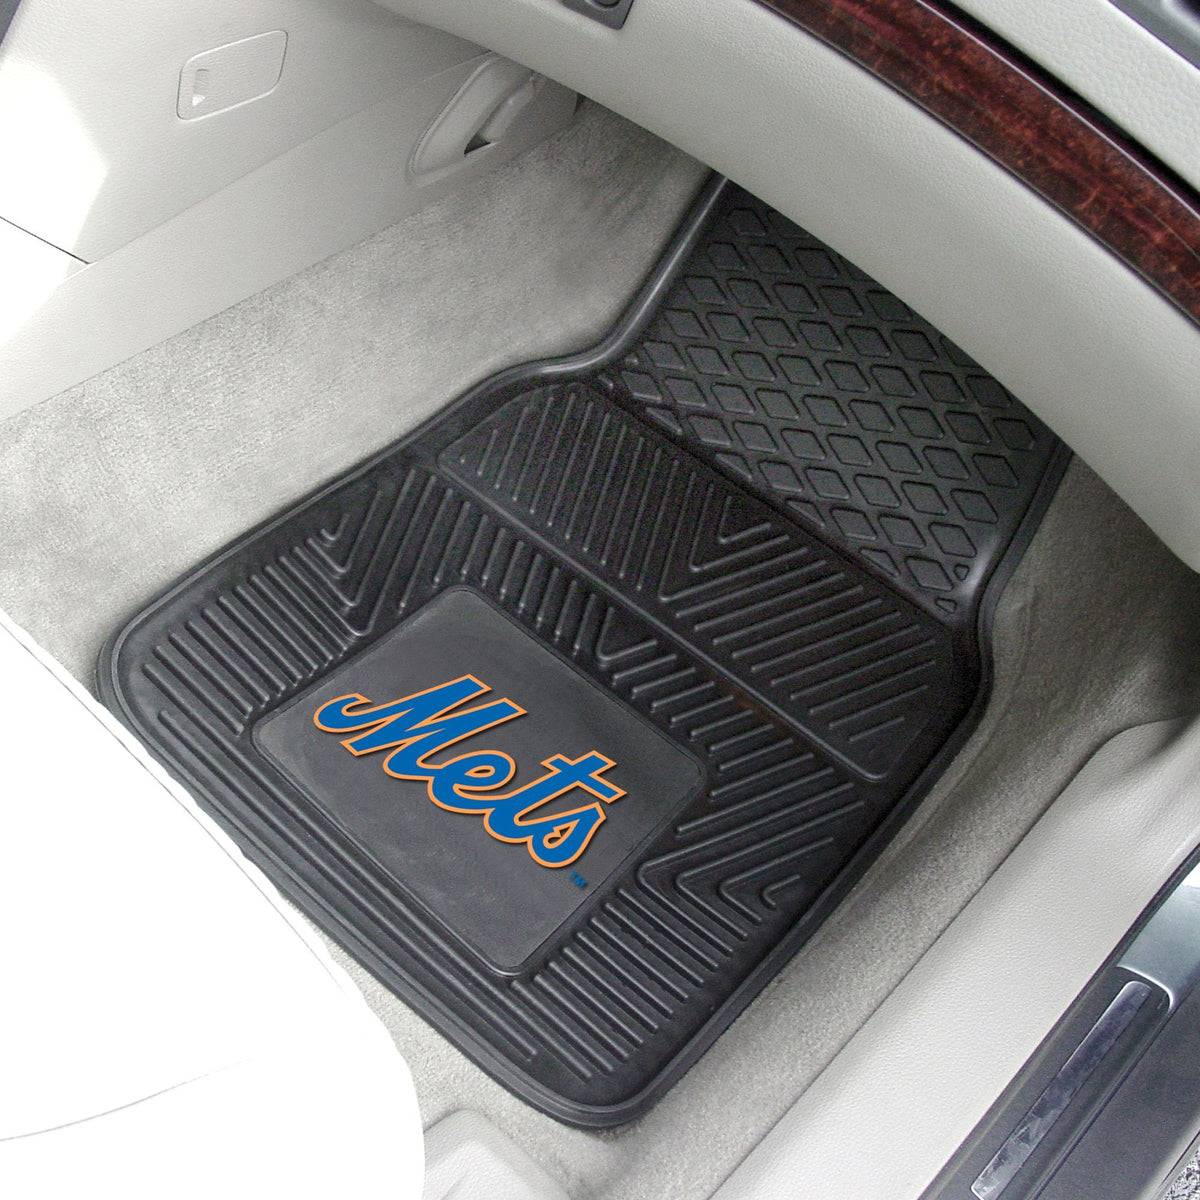 MLB - Vinyl Car Mat, 2-Piece Set MLB Mats, Front Car Mats, 2-pc Vinyl Car Mat Set, MLB, Auto Fan Mats New York Mets